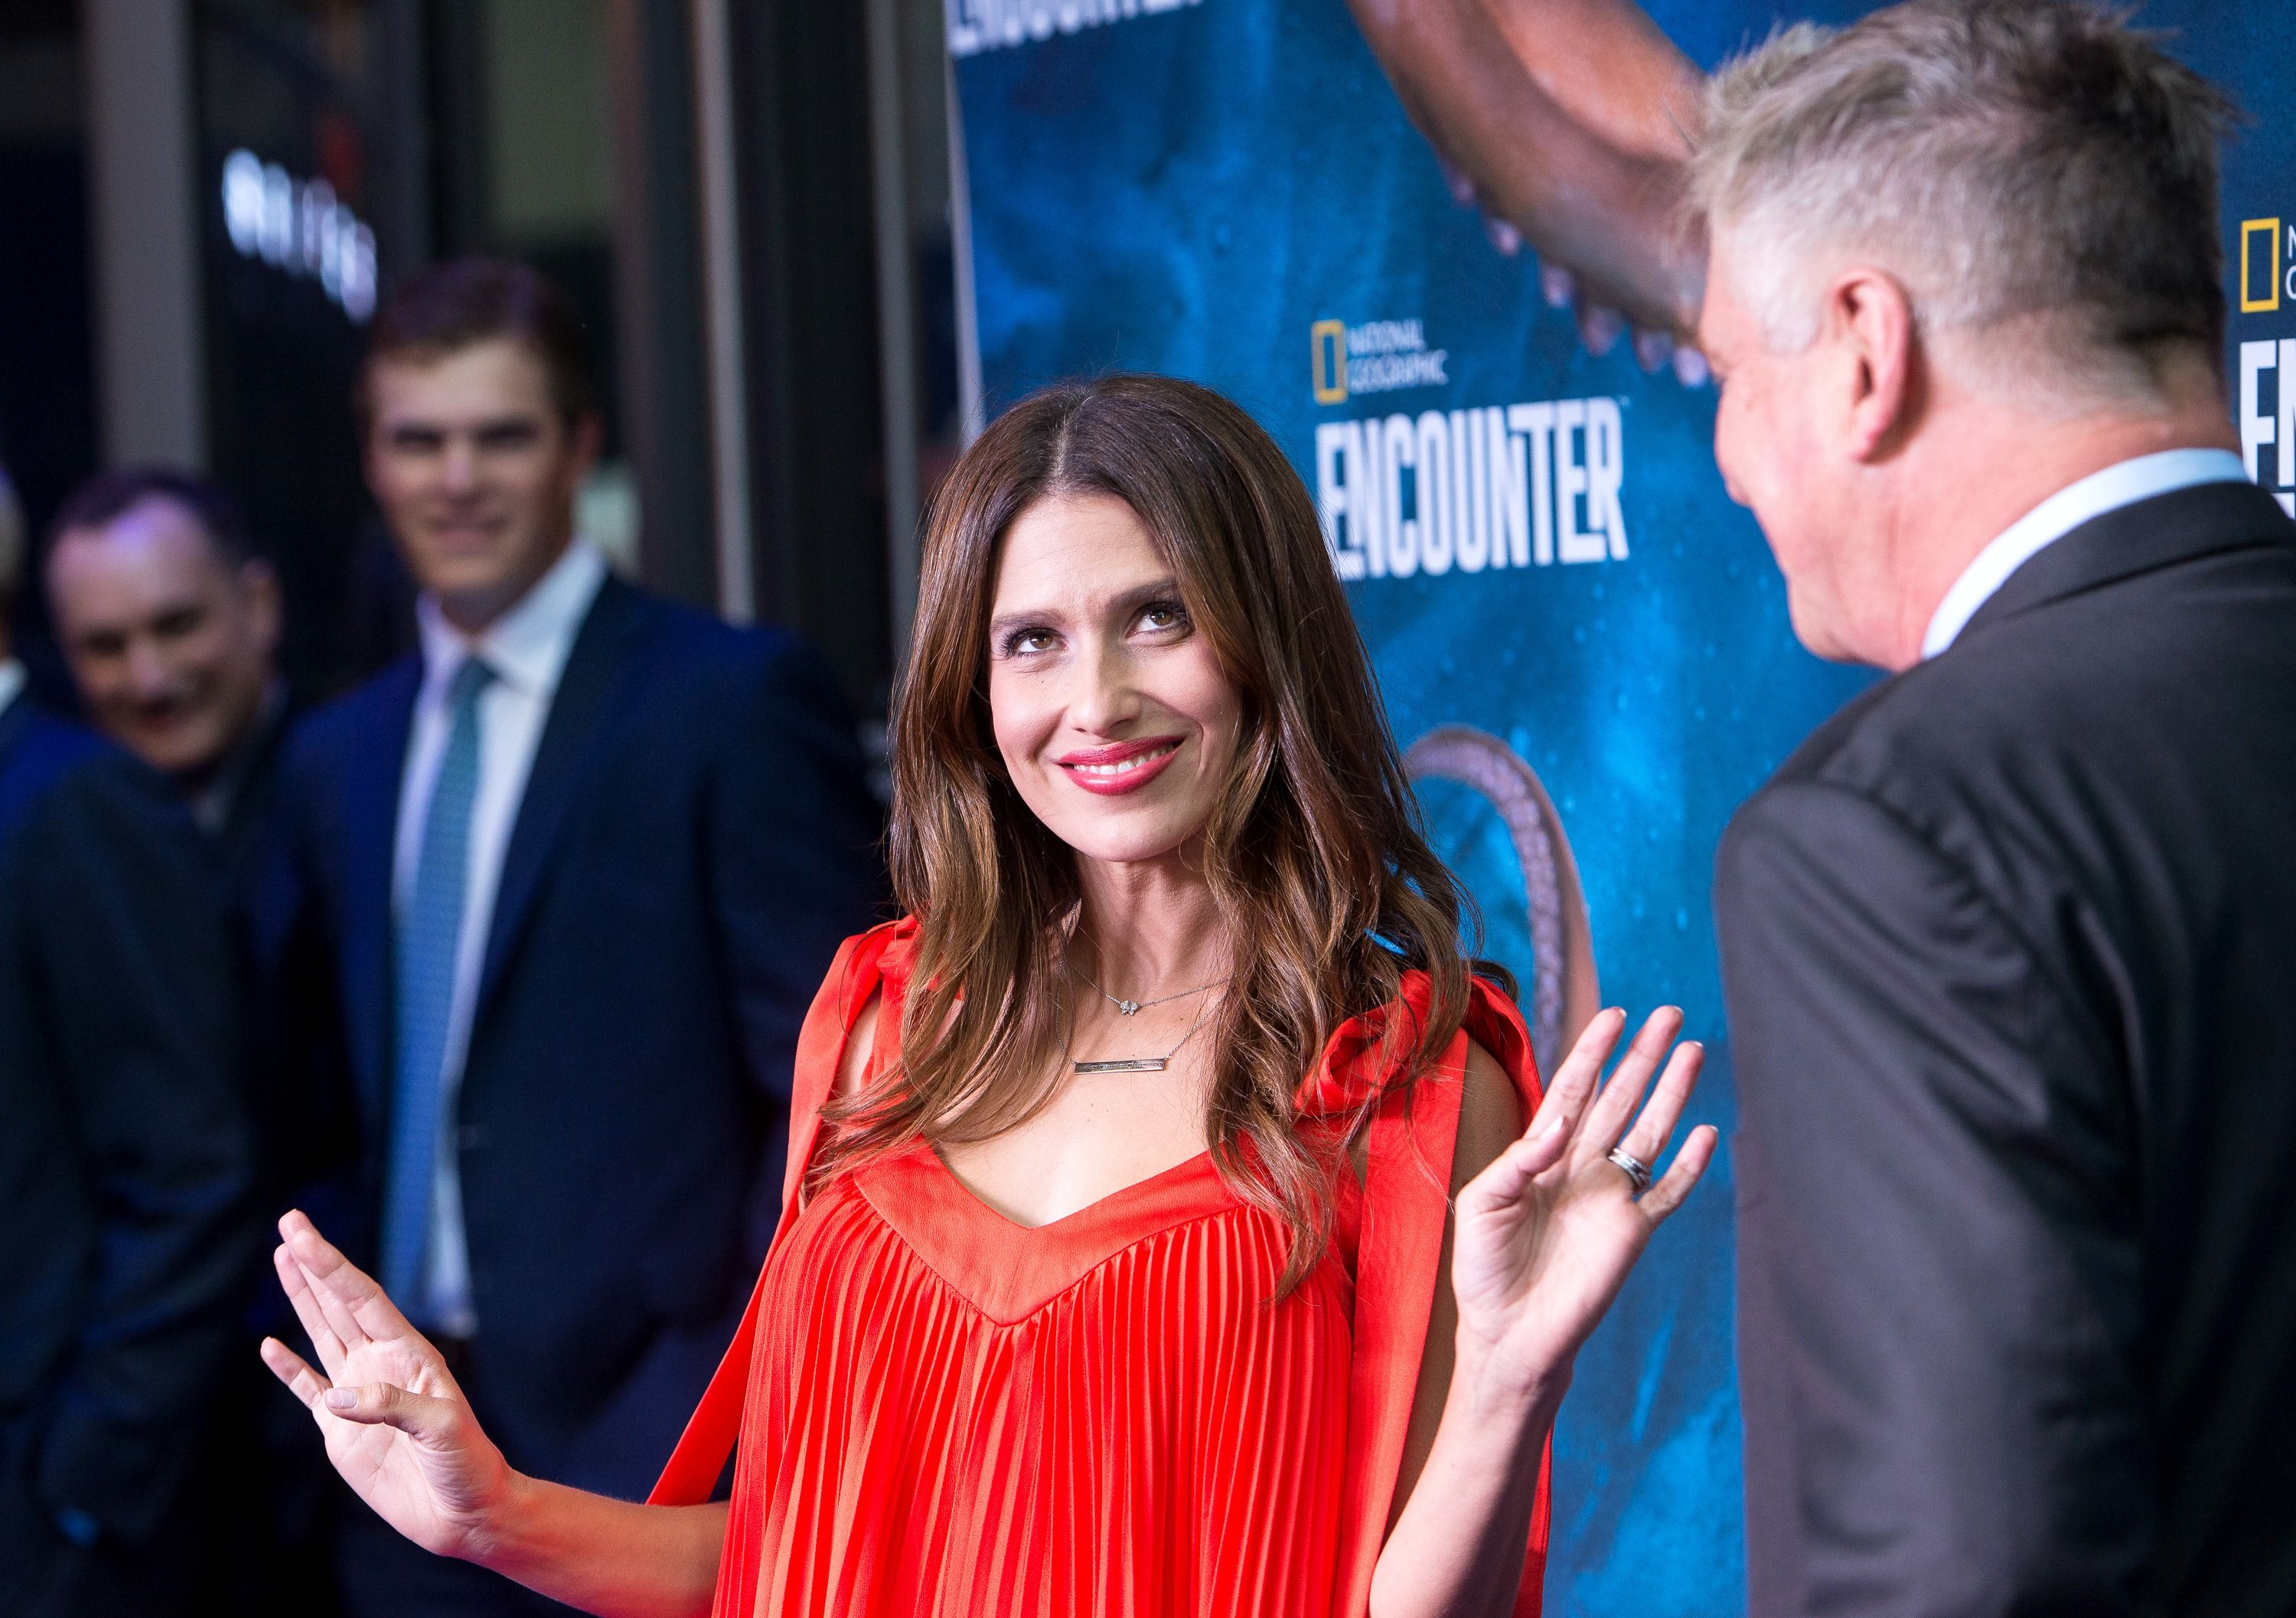 Hilaria Baldwin Just Shared Her Go-To Exercise for Better Sex Hilaria Baldwin Just Shared Her Go-To Exercise for Better Sex new foto